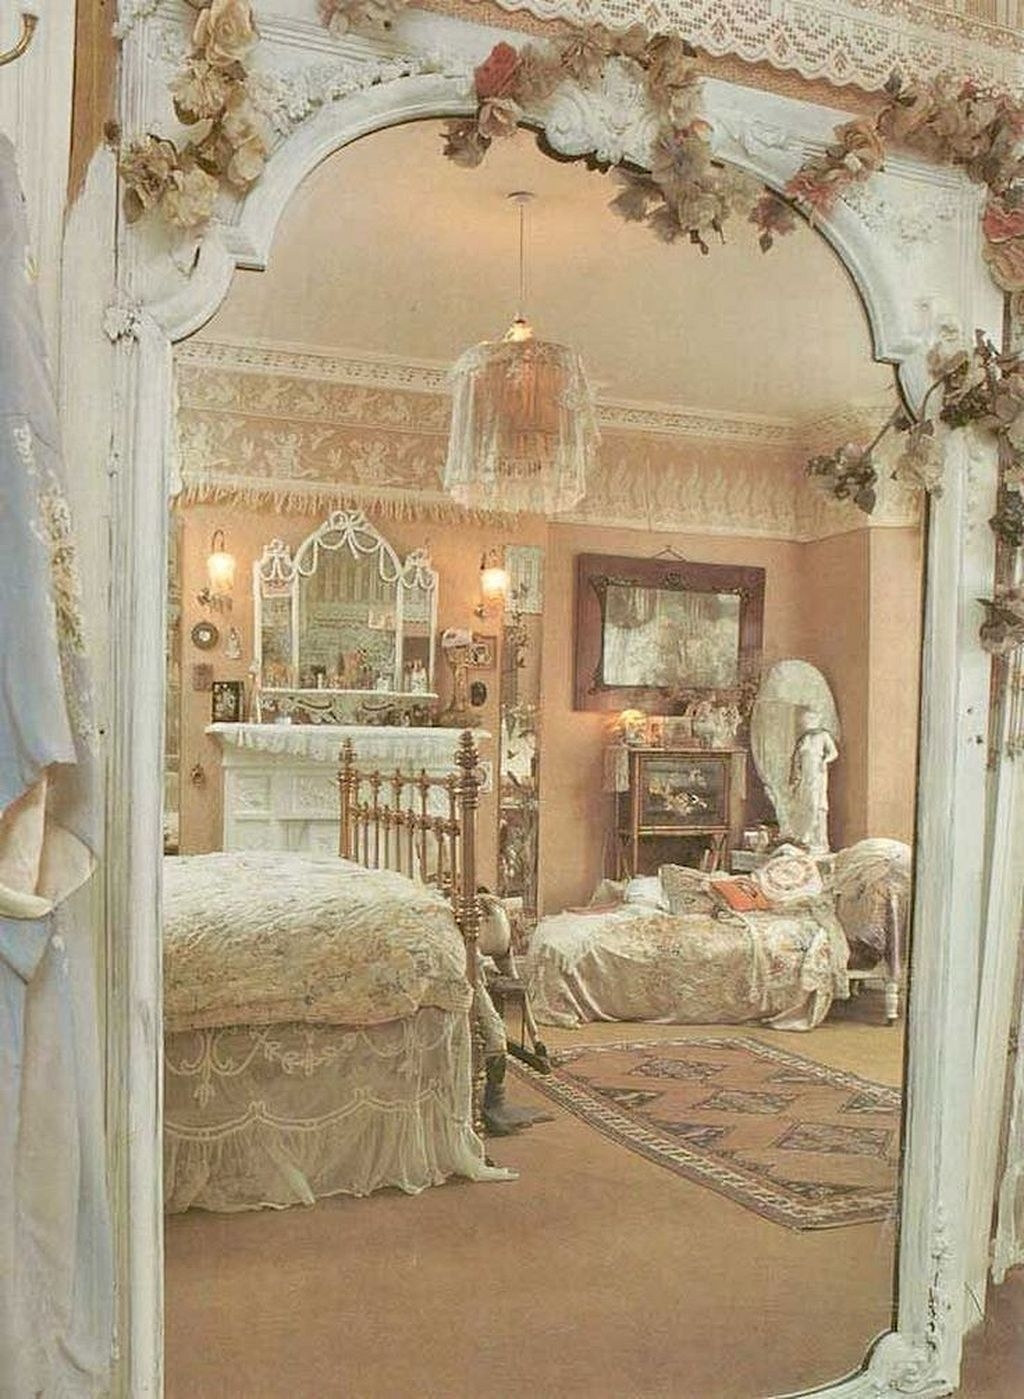 4.5 out of 5 stars. Stunning 40 Romantic Shabby Chic Bedroom Decor And Furniture Ideas Https Modernhou Shabby Chic Romantic Bedroom Shabby Chic Decor Bedroom Chic Bedroom Decor